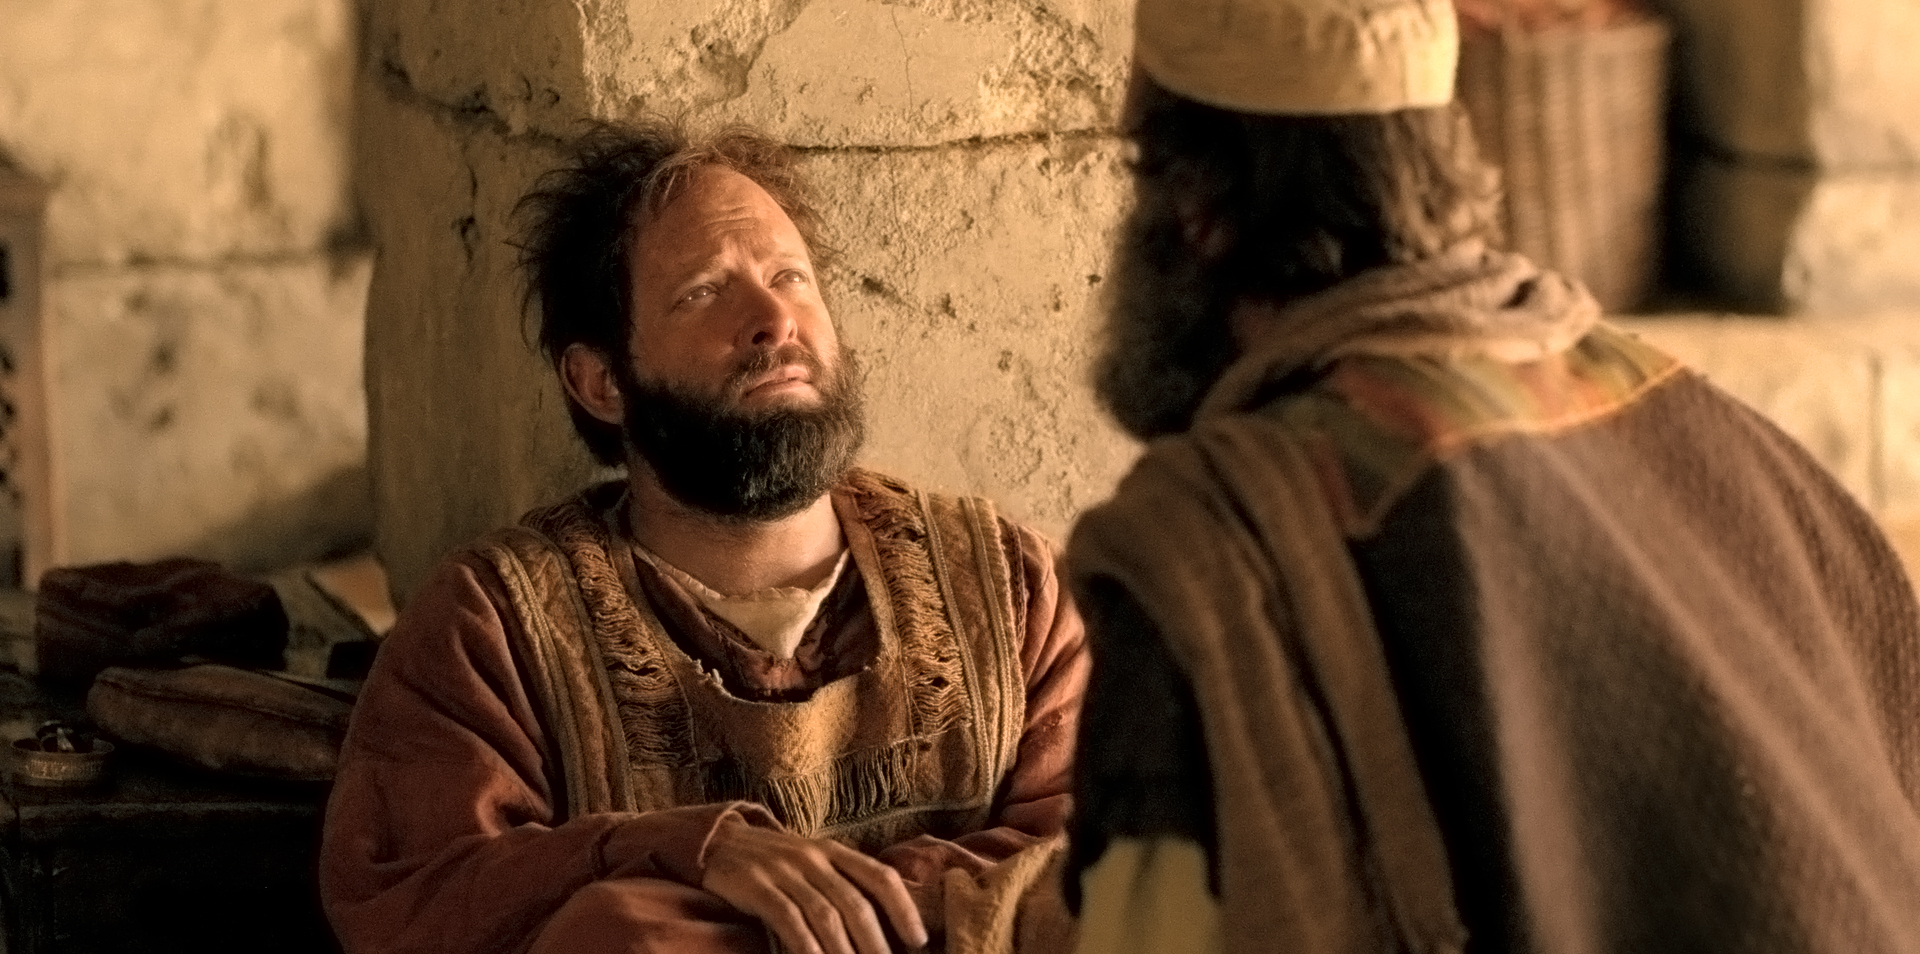 Christ commands Ananias to find Saul and give him sight so that he can preach of Christ.